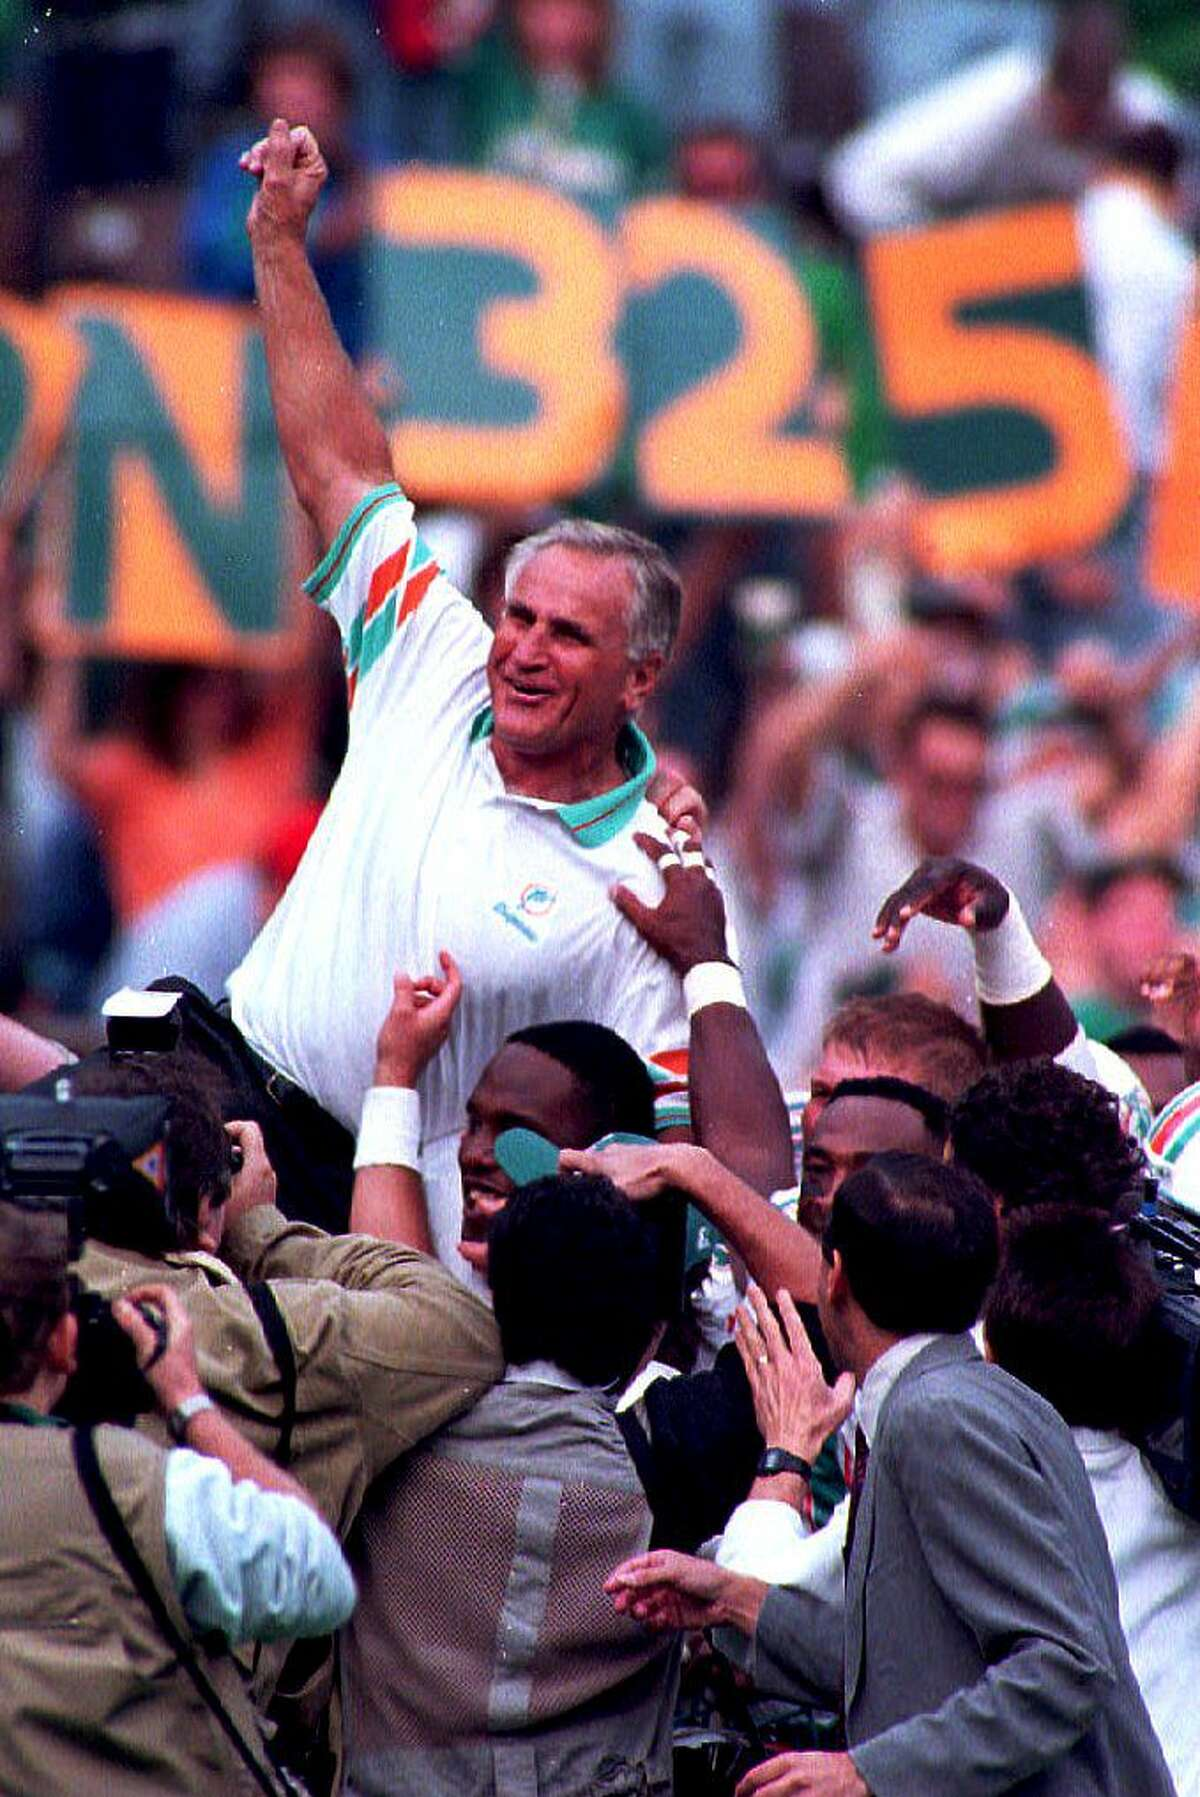 50. Shula wins - and loses: Miami's finishes an unprecedented 17-0 season with an impressive victory over Washington in Super Bowl VI. But as the veteran coach was carried off the field, a thief attempted to steal his watch. Not surprisingly, the one-time former Cleveland defensive back chased down the thief and retrieved his lost item.